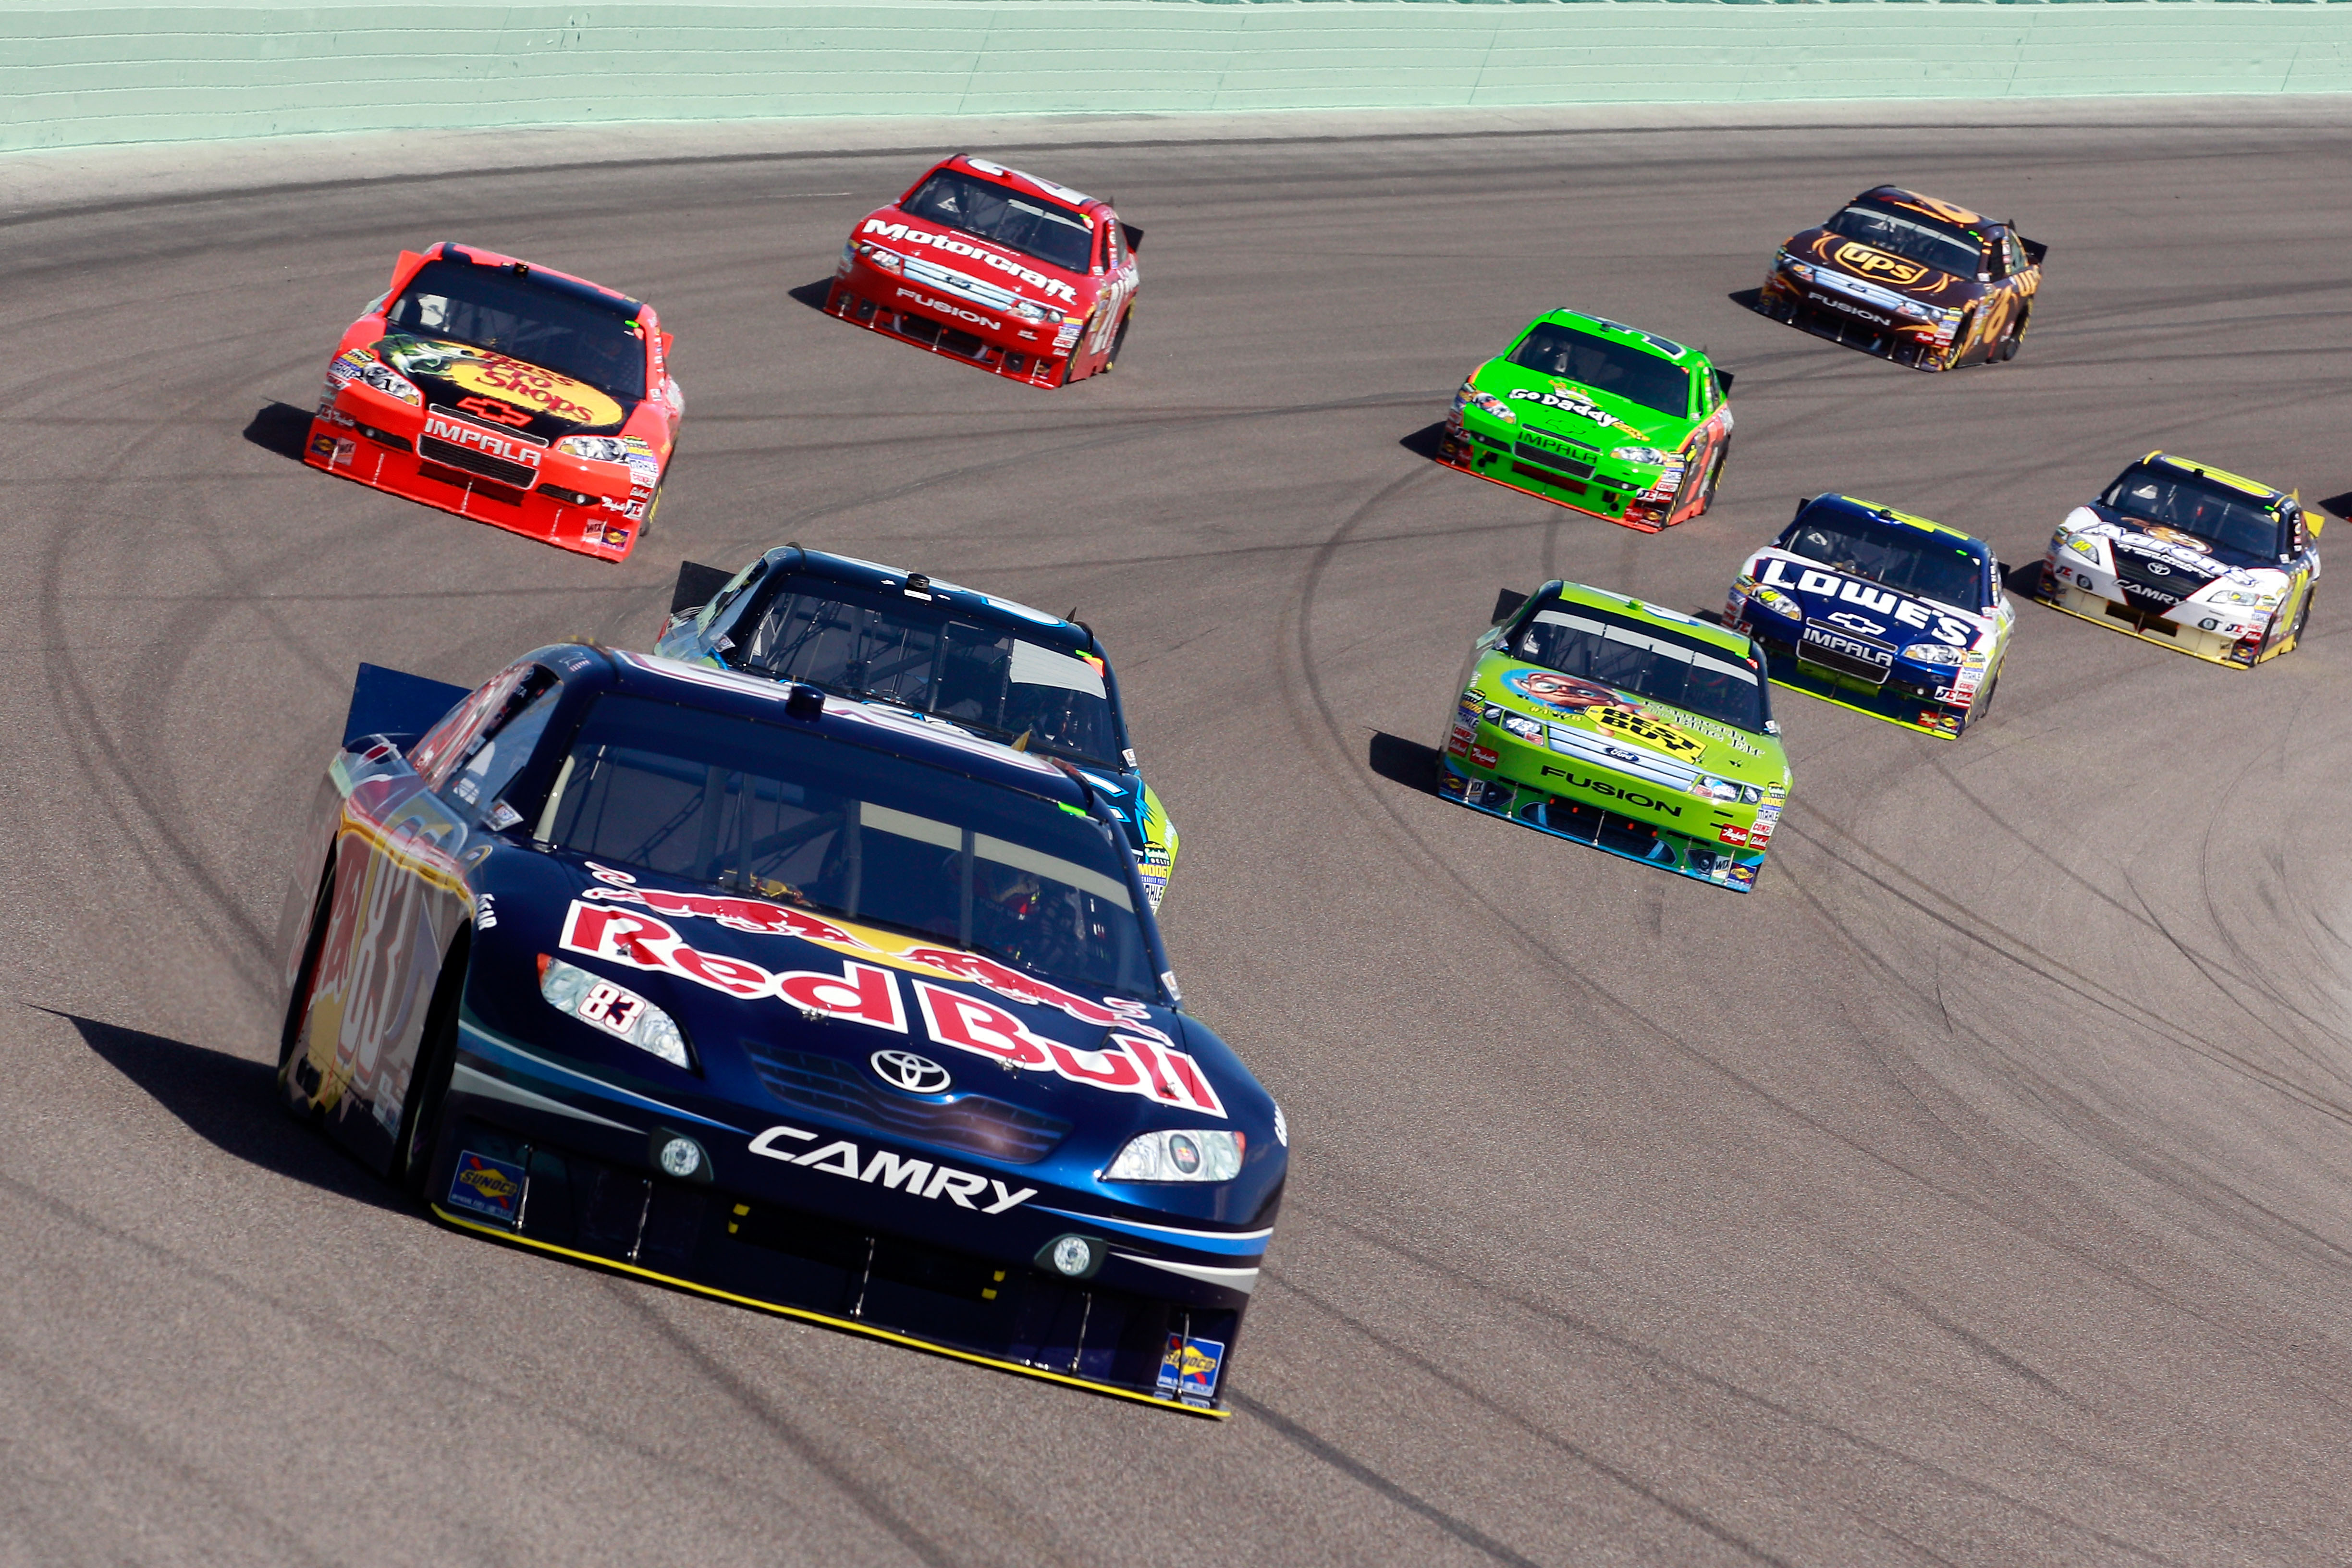 HOMESTEAD, FL - NOVEMBER 21:  Kasey Kahne, driver of the #83 Red Bull Toyota, leads a group of cars during the NASCAR Sprint Cup Series Ford 400 at Homestead-Miami Speedway on November 21, 2010 in Homestead, Florida.  (Photo by Sam Greenwood/Getty Images)